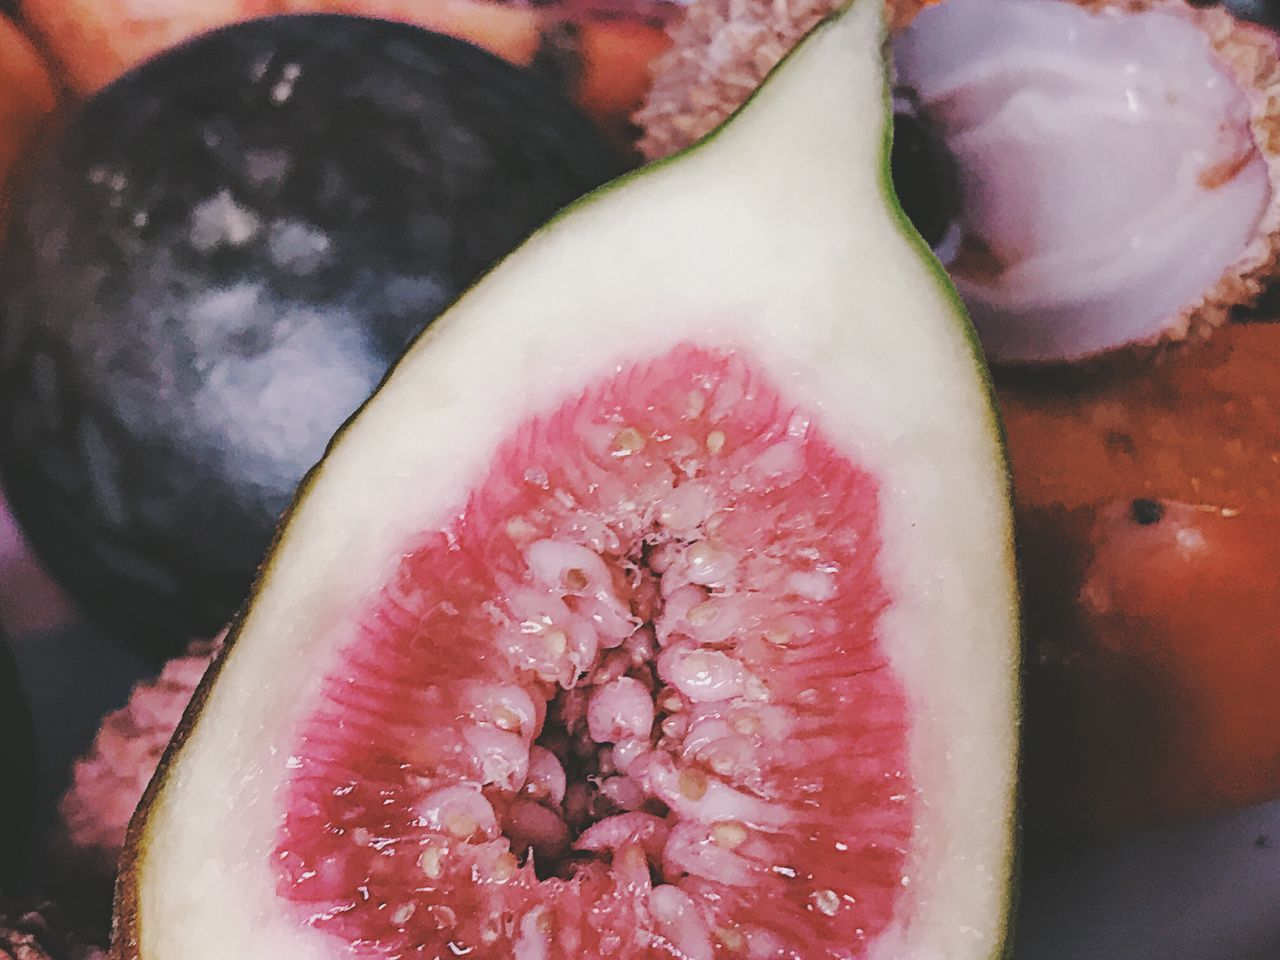 Freshness Healthy Eating Close-up Food And Drink Food Fruit SLICE No People Cross Section Indoors  Halved Seed Day Still Life Juicy Fruits Closeup Close Up Exotic Fruits Exotic Fruit Ready-to-eat Indoors  Seeds Figs Fig